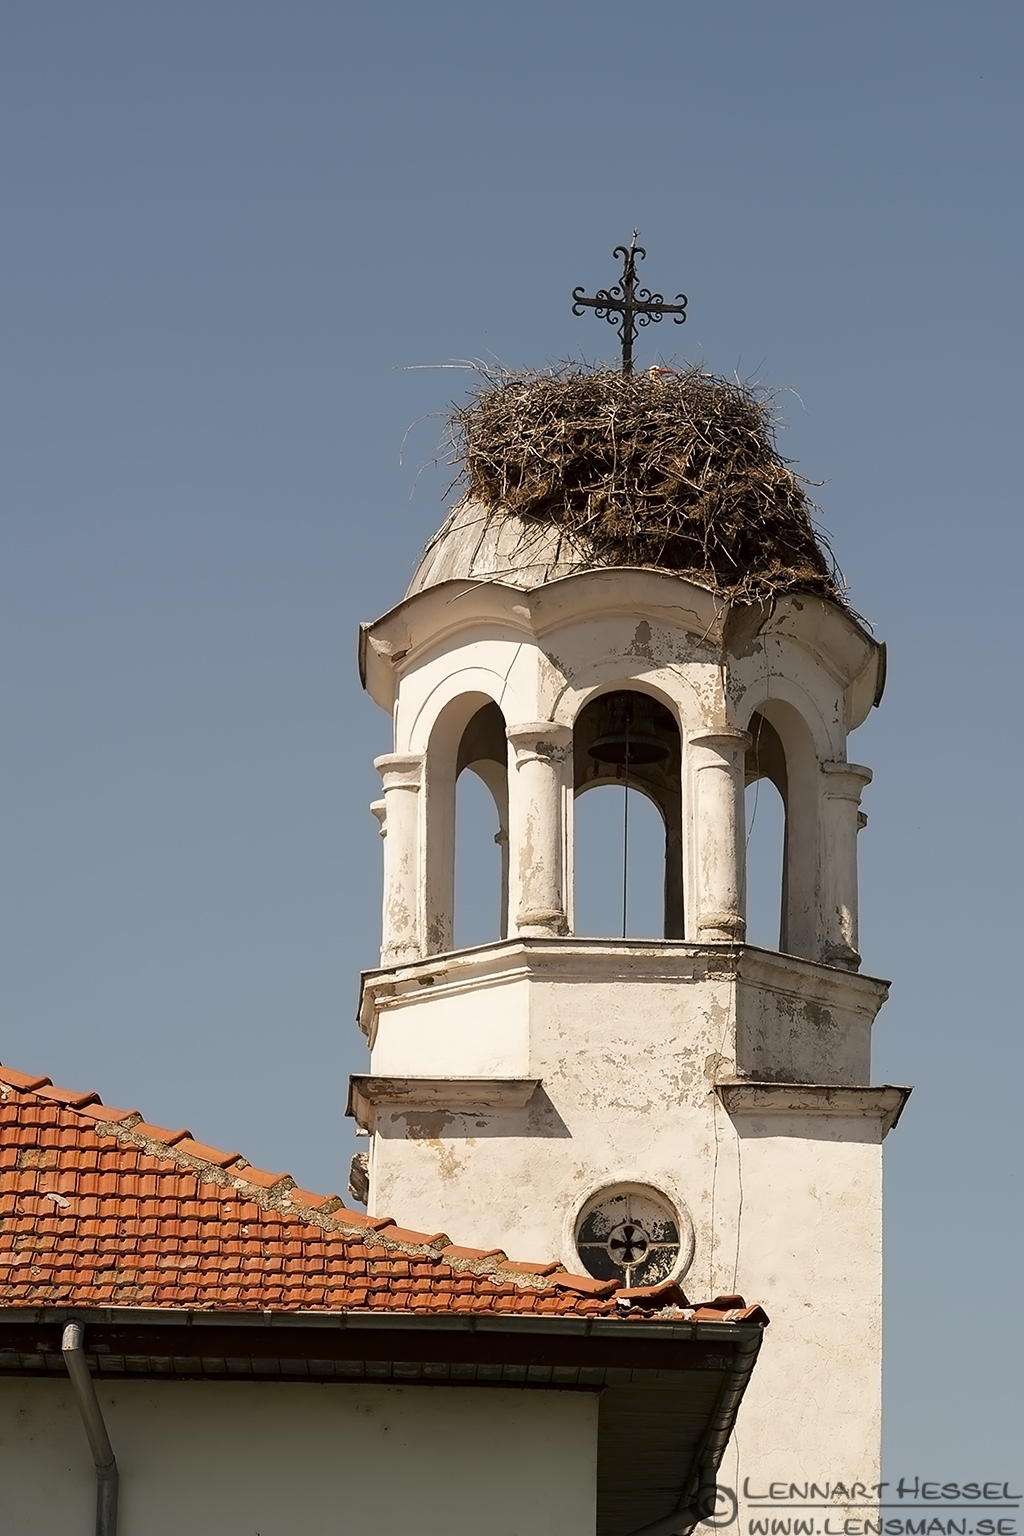 The church and the White Stork in Bulgaria